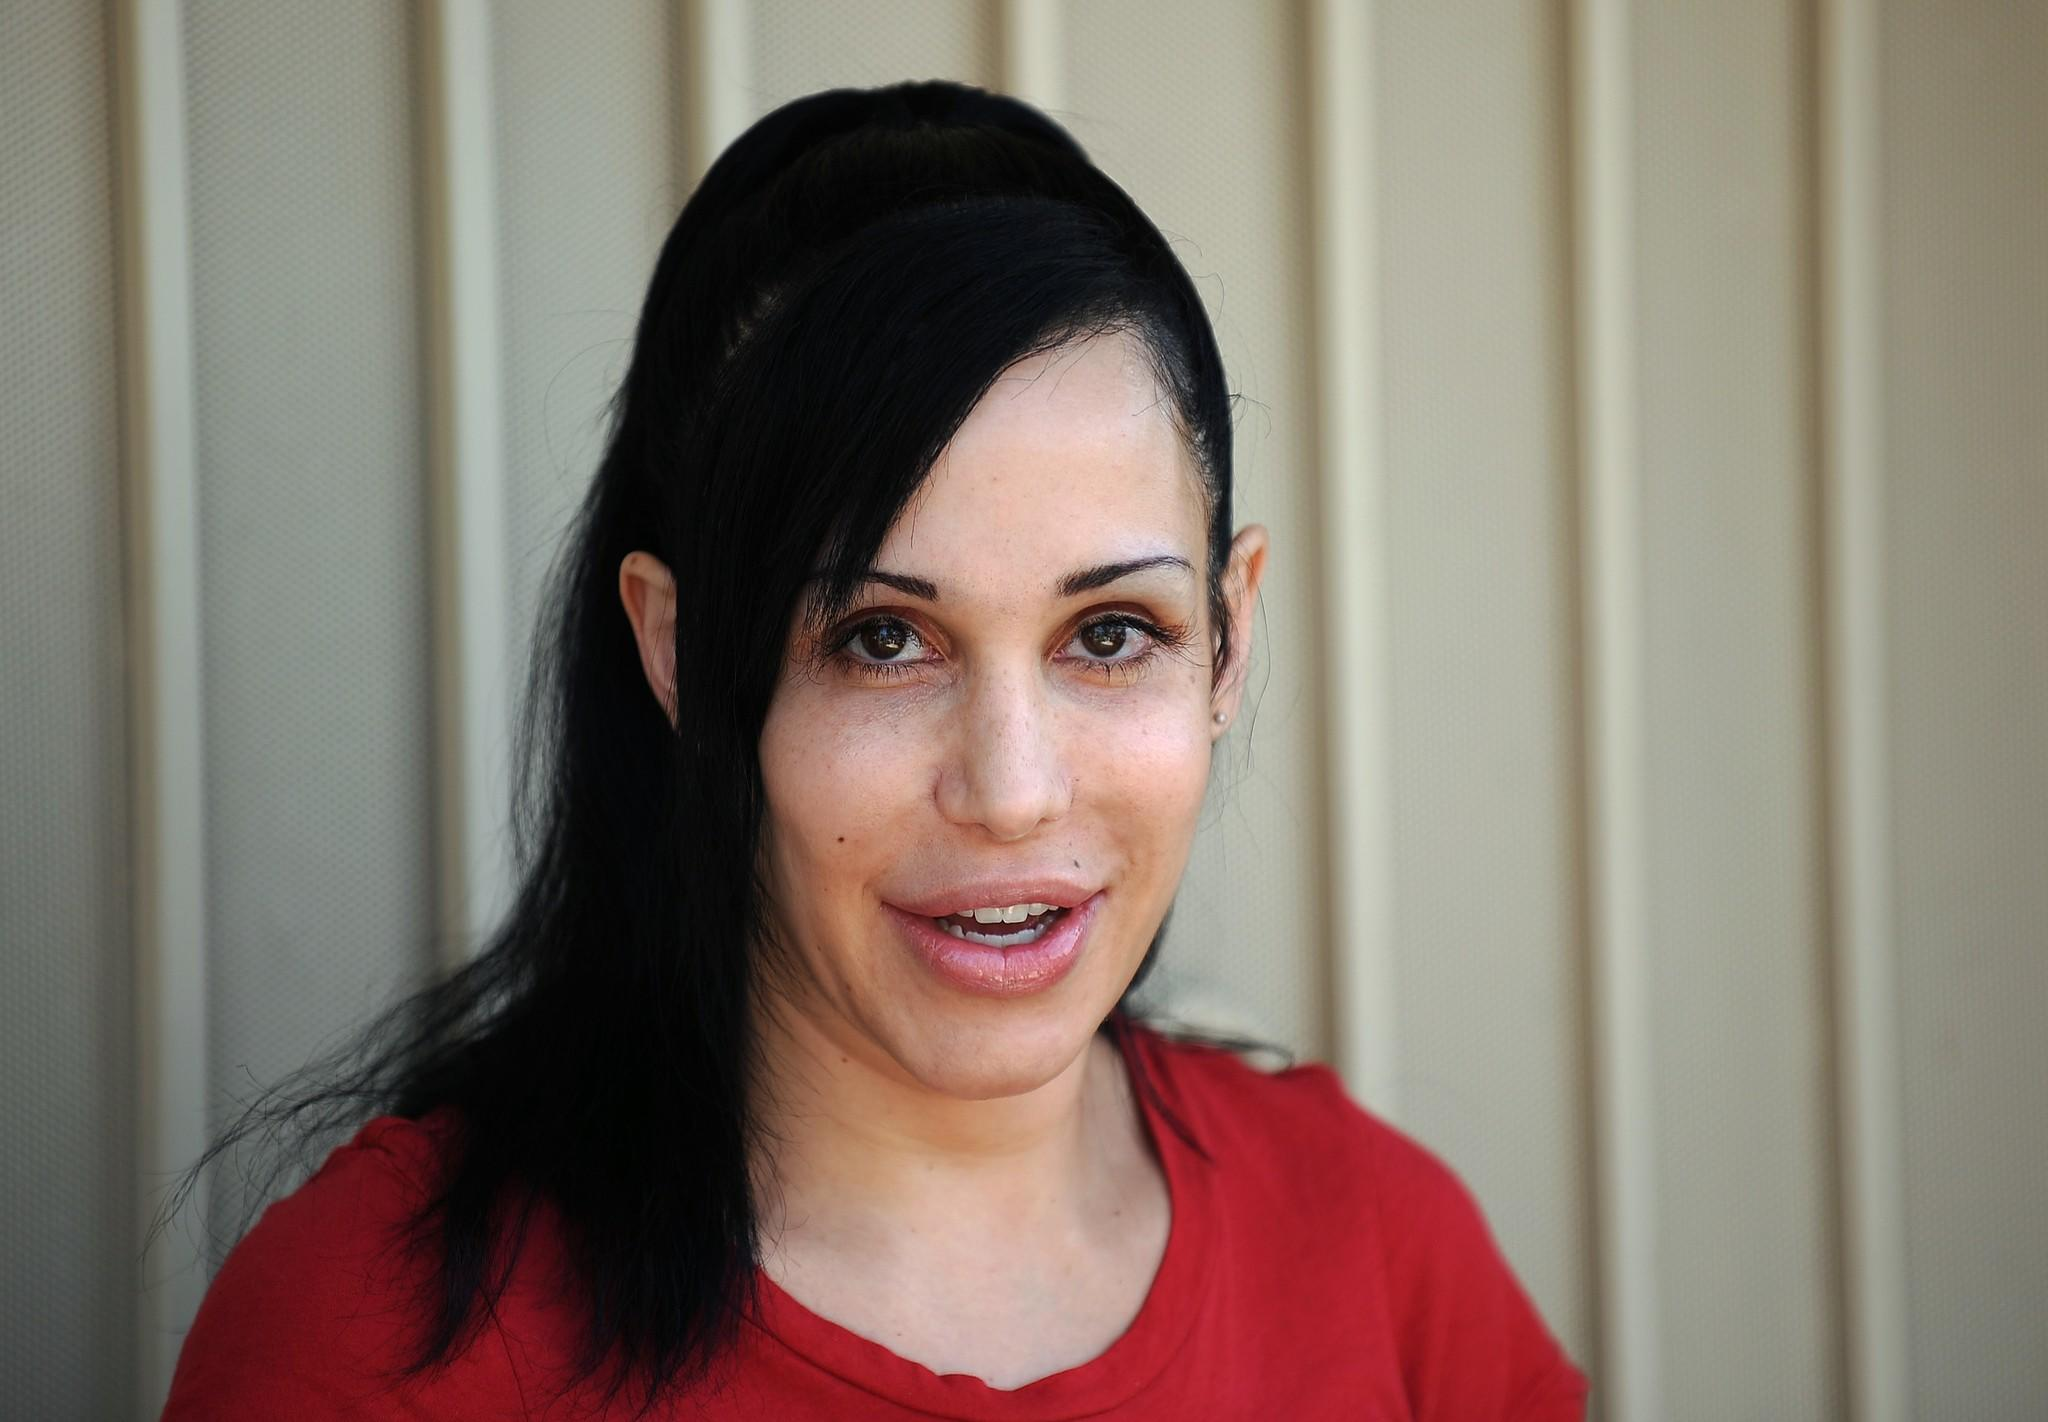 """Octomom"" Nadya Suleman poses for photographers in front of her California home in 2010."